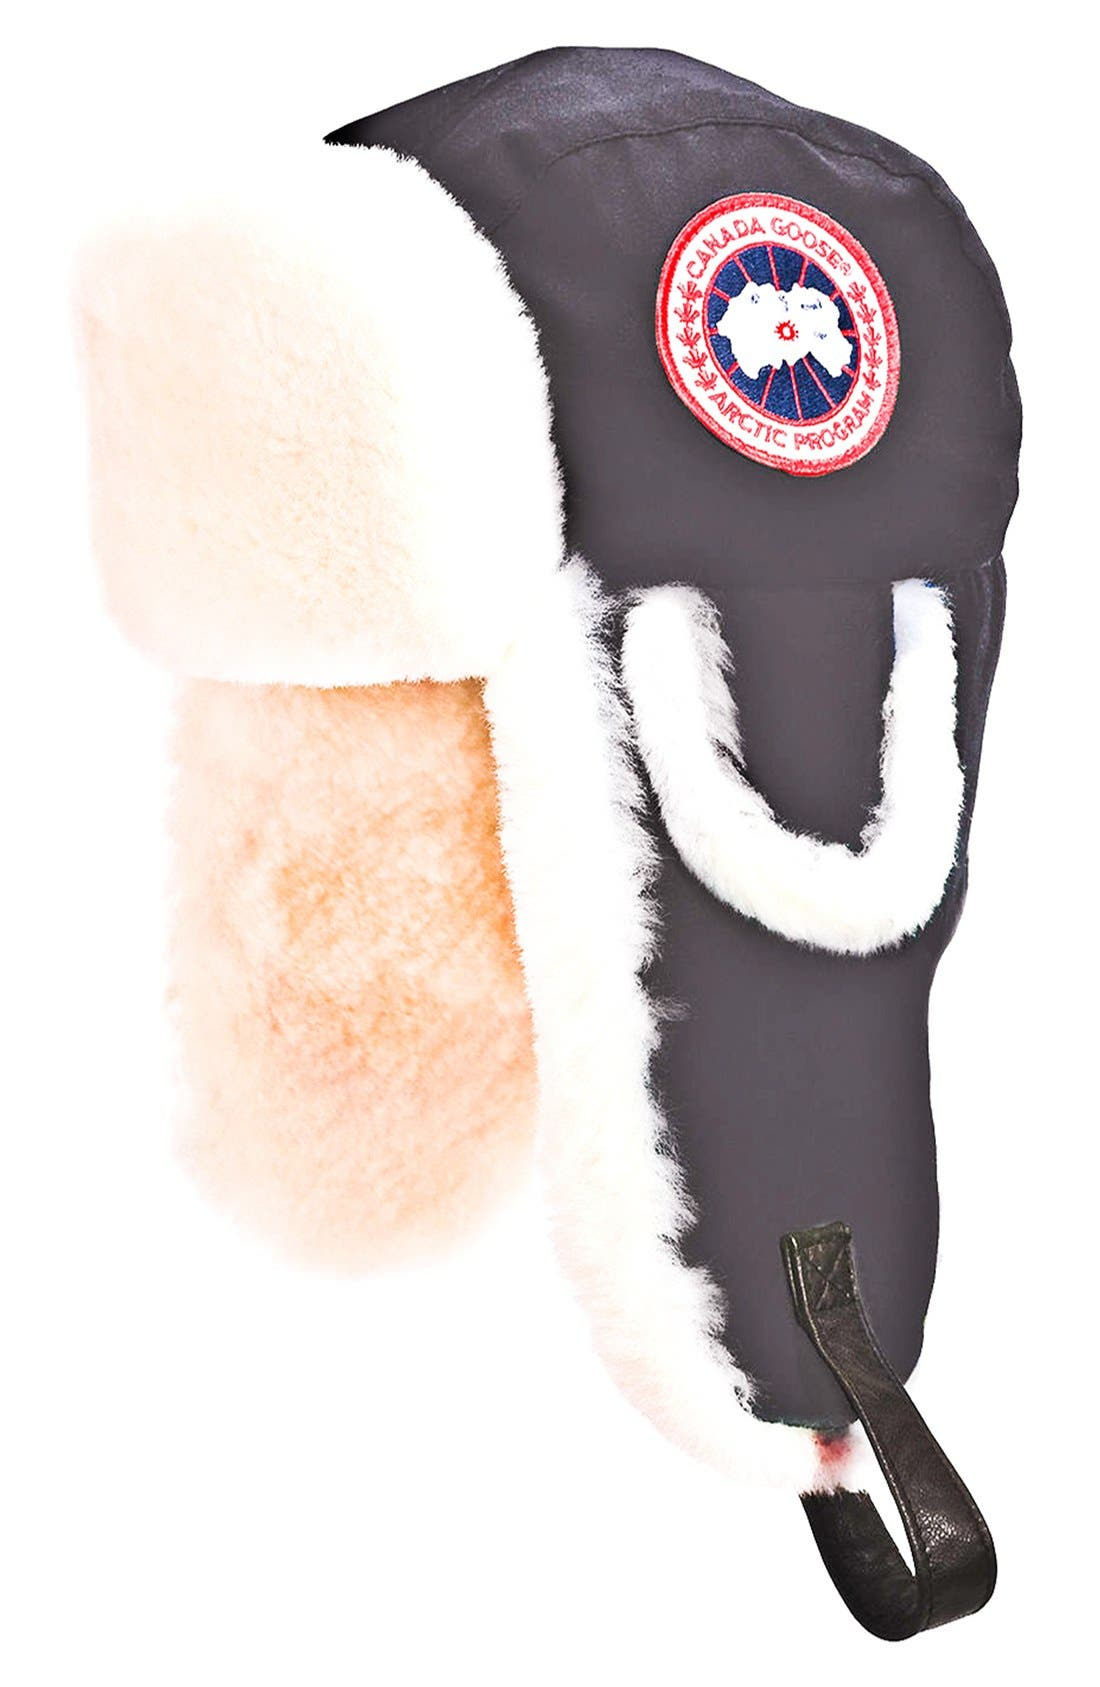 Main Image - Canada Goose 'Arctic' Tech Pilot Hat with Genuine Shearling Lining